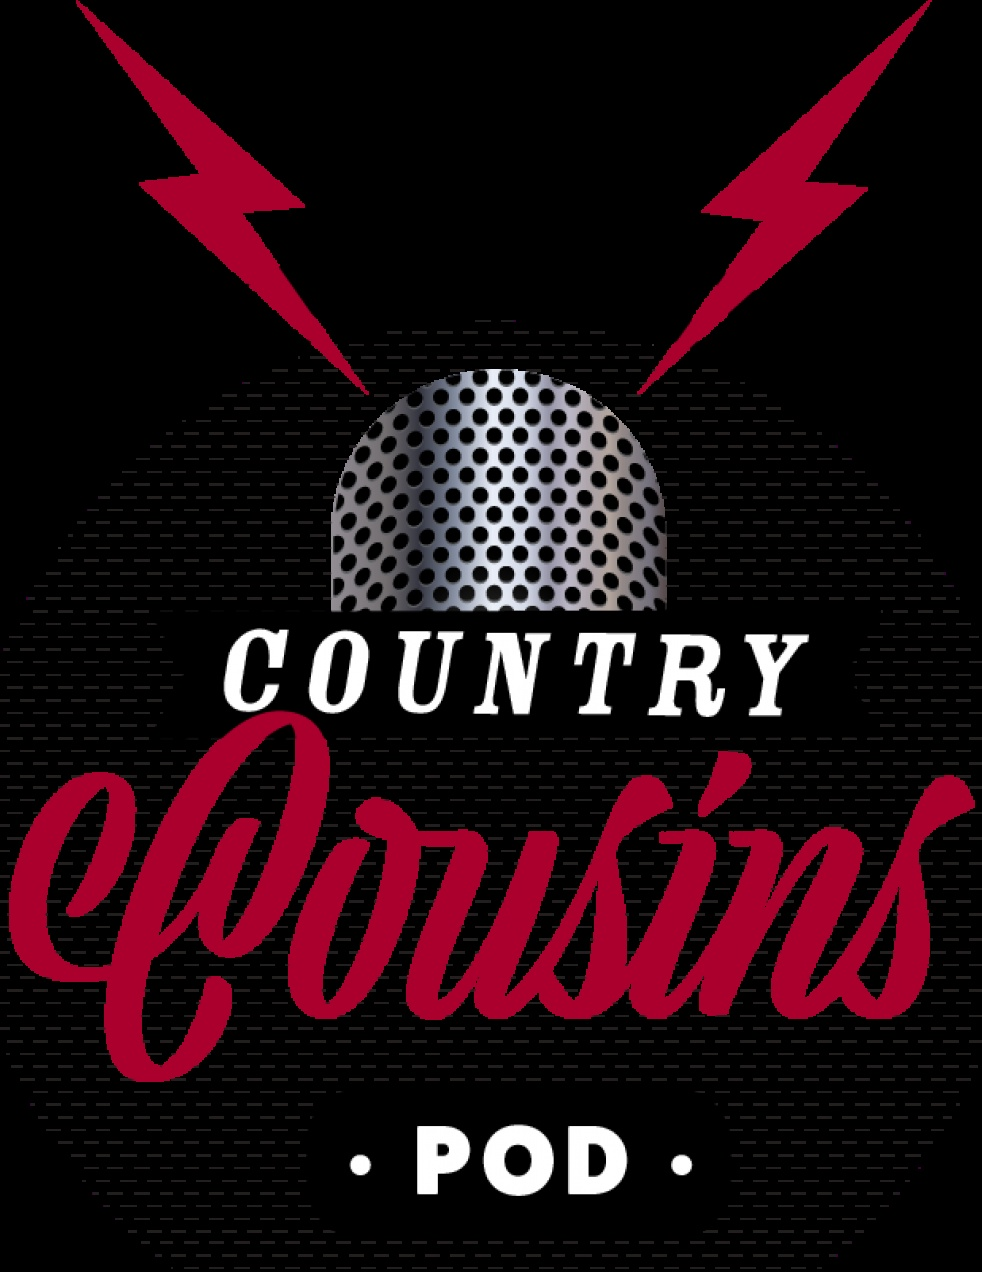 Country Cousins - Cover Image